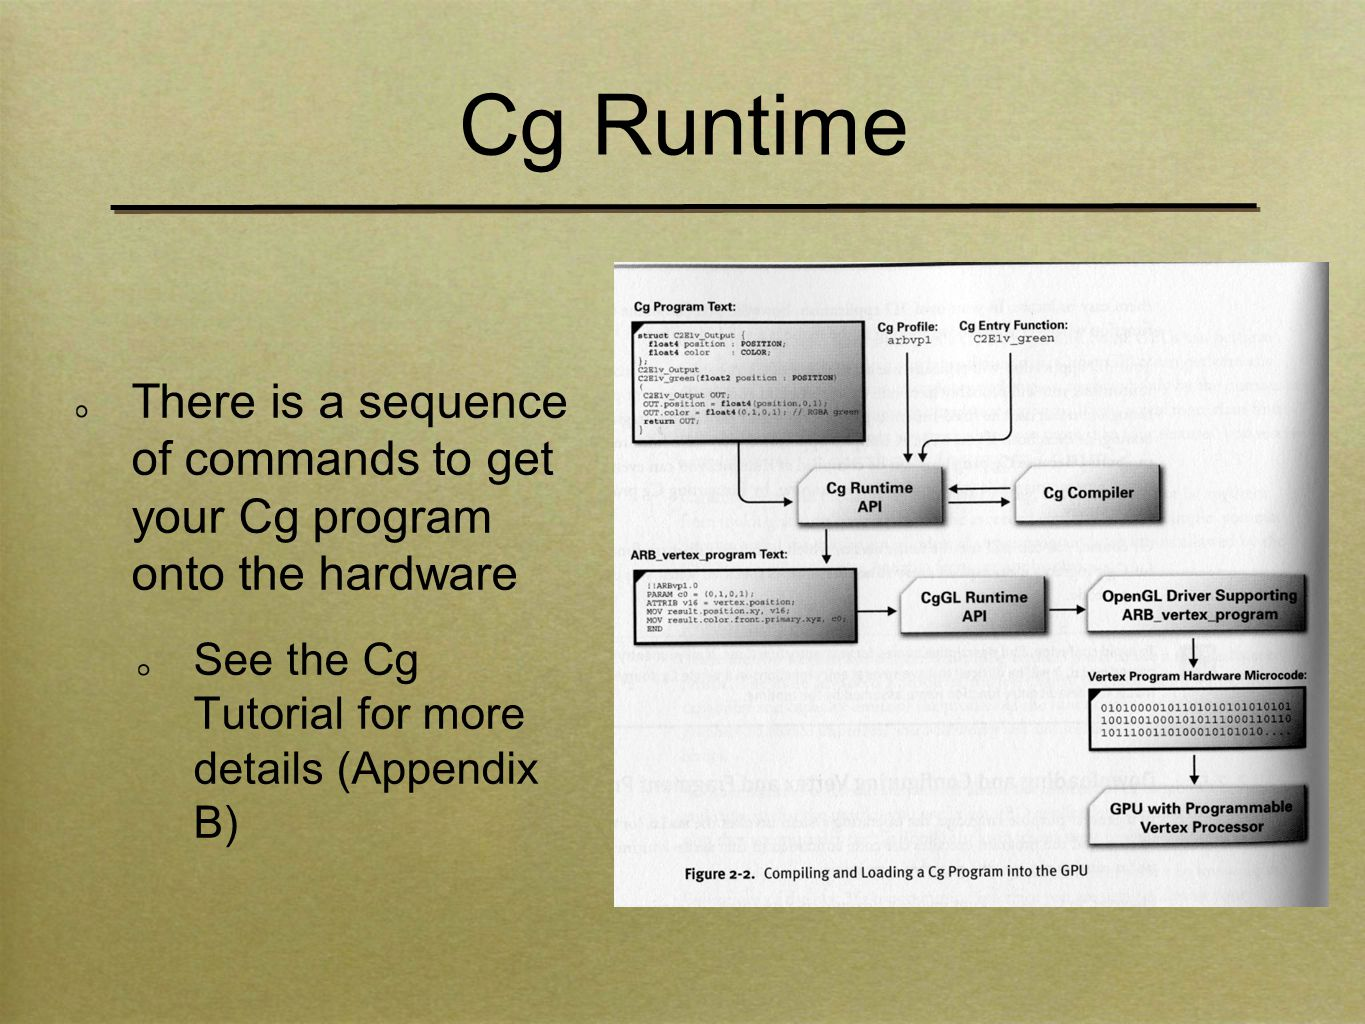 Cg Runtime There is a sequence of commands to get your Cg program onto the hardware See the Cg Tutorial for more details (Appendix B)